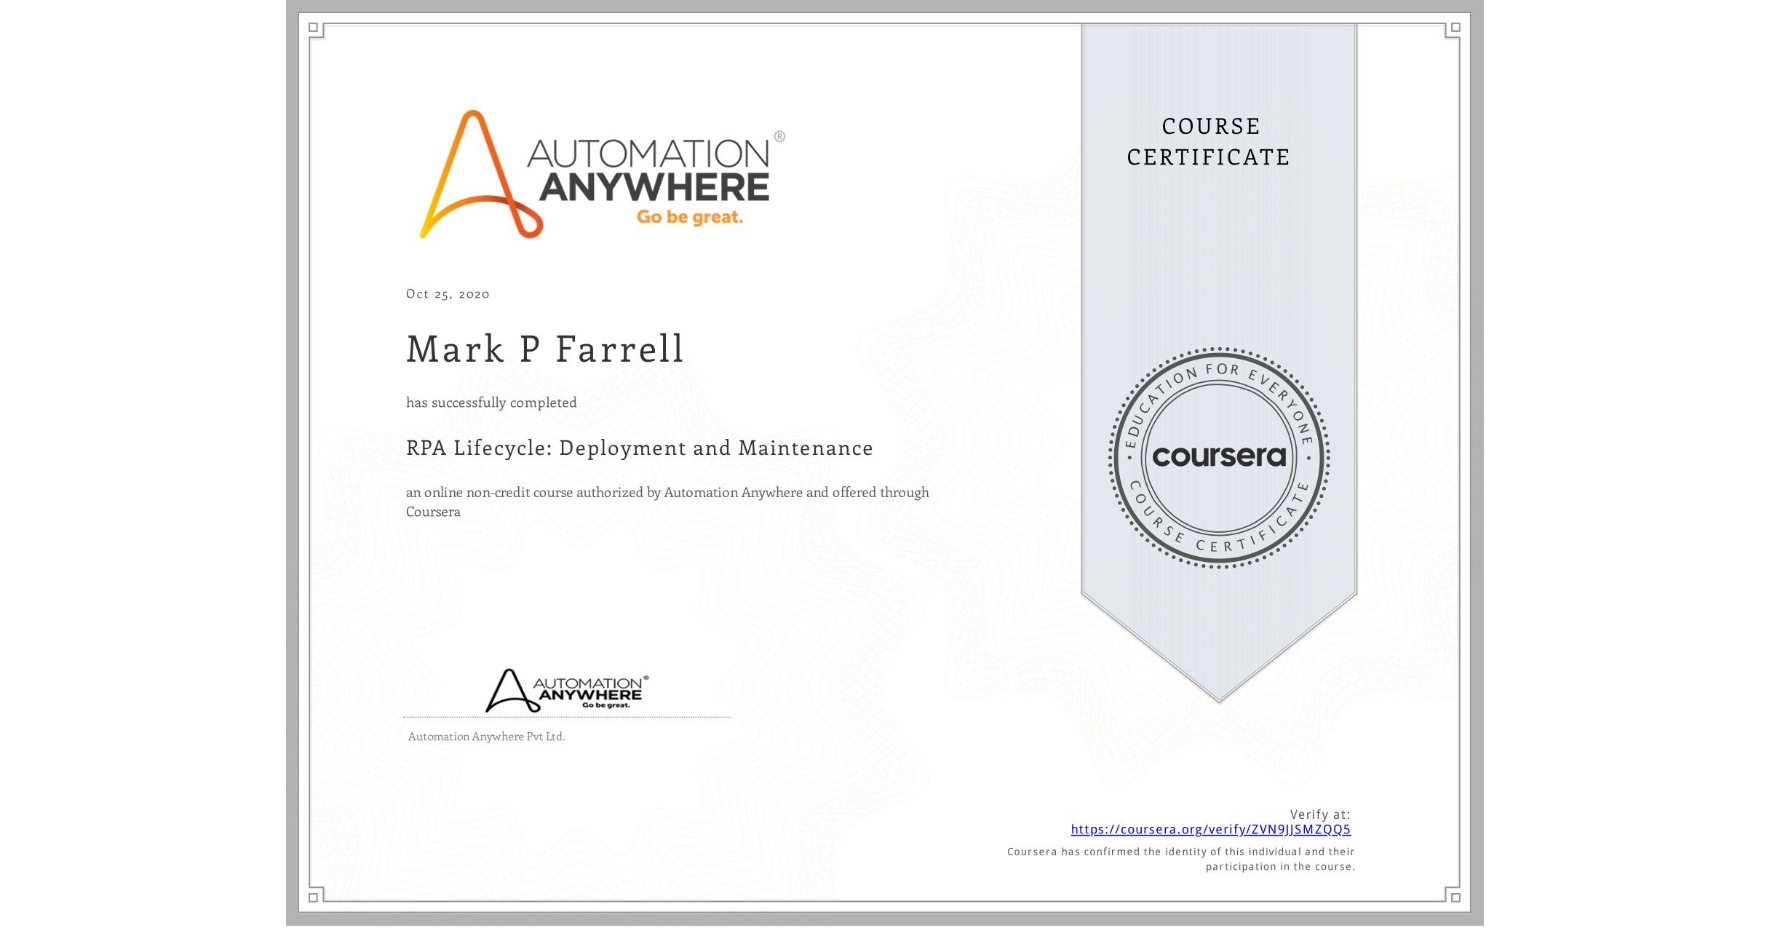 View certificate for Mark P Farrell, RPA Lifecycle: Deployment and Maintenance, an online non-credit course authorized by Automation Anywhere and offered through Coursera